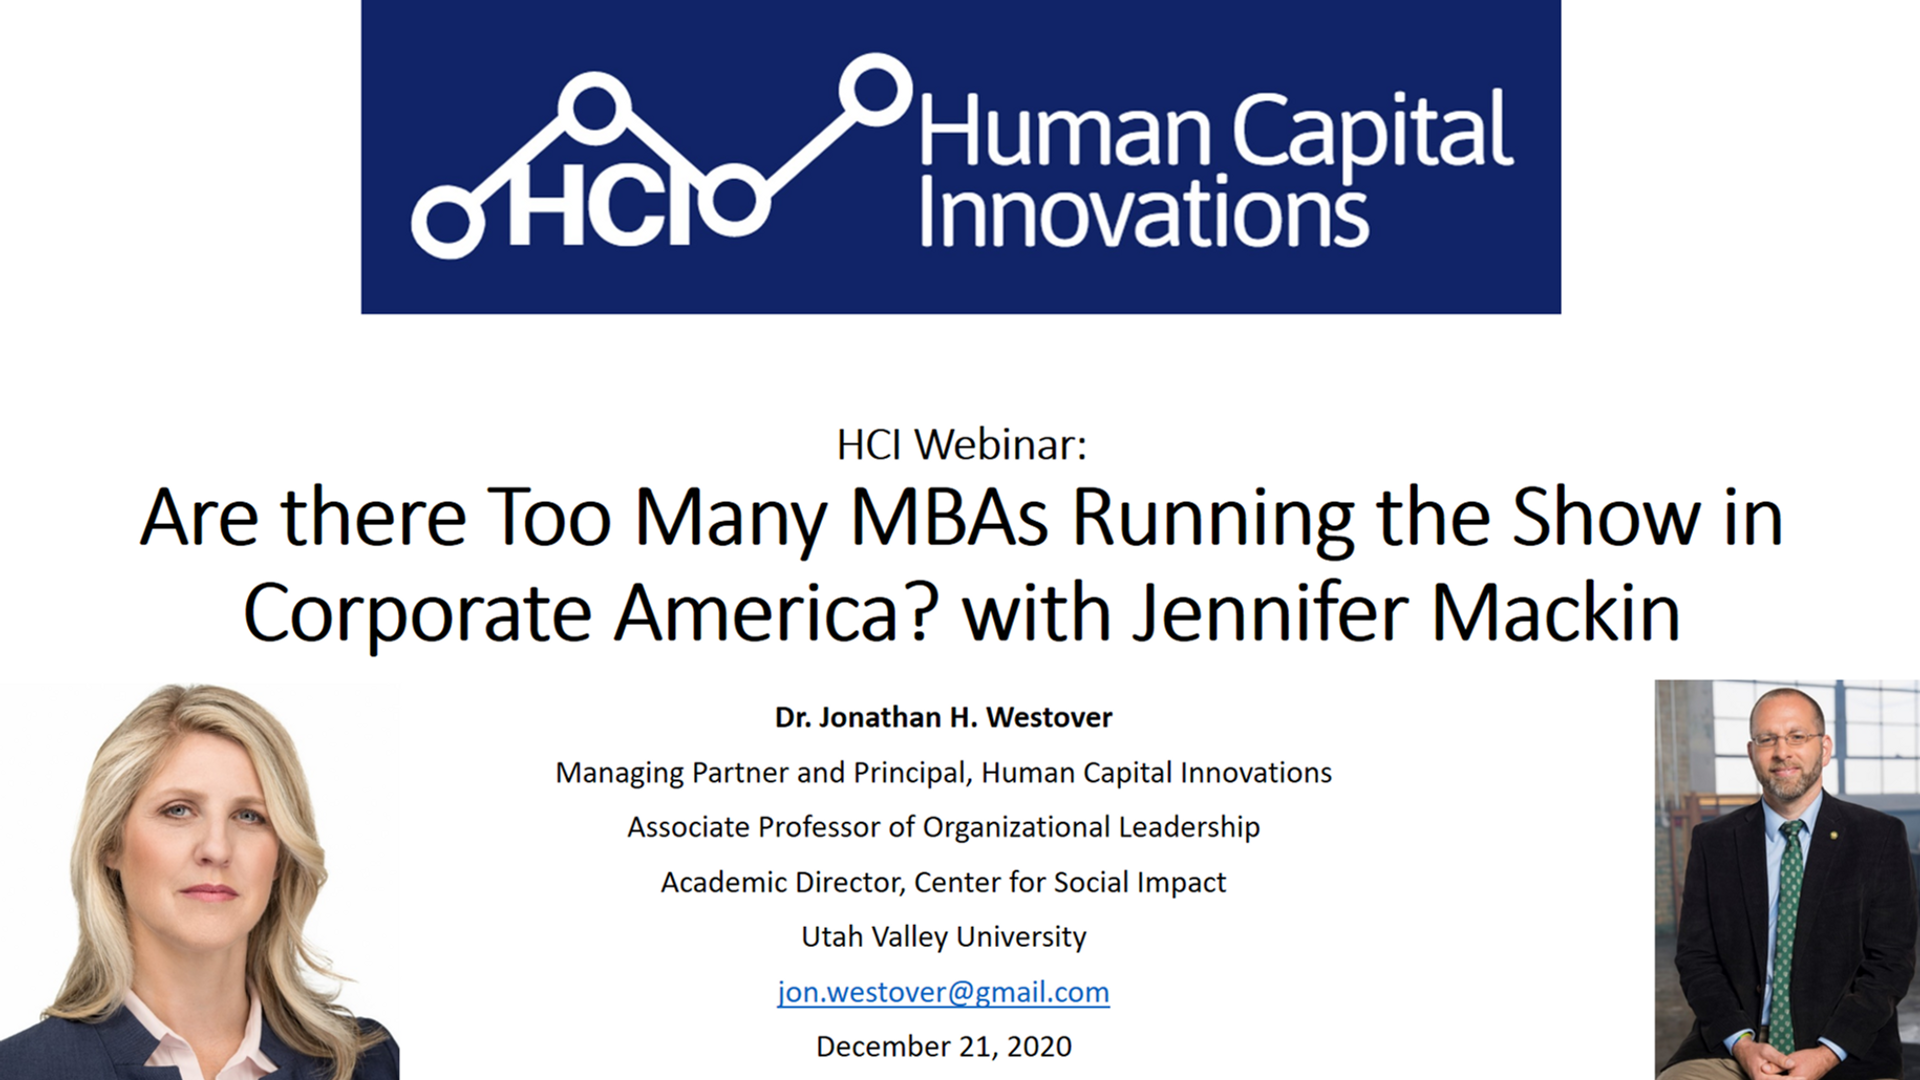 Are there Too Many MBAs Running the Show in Corporate America?